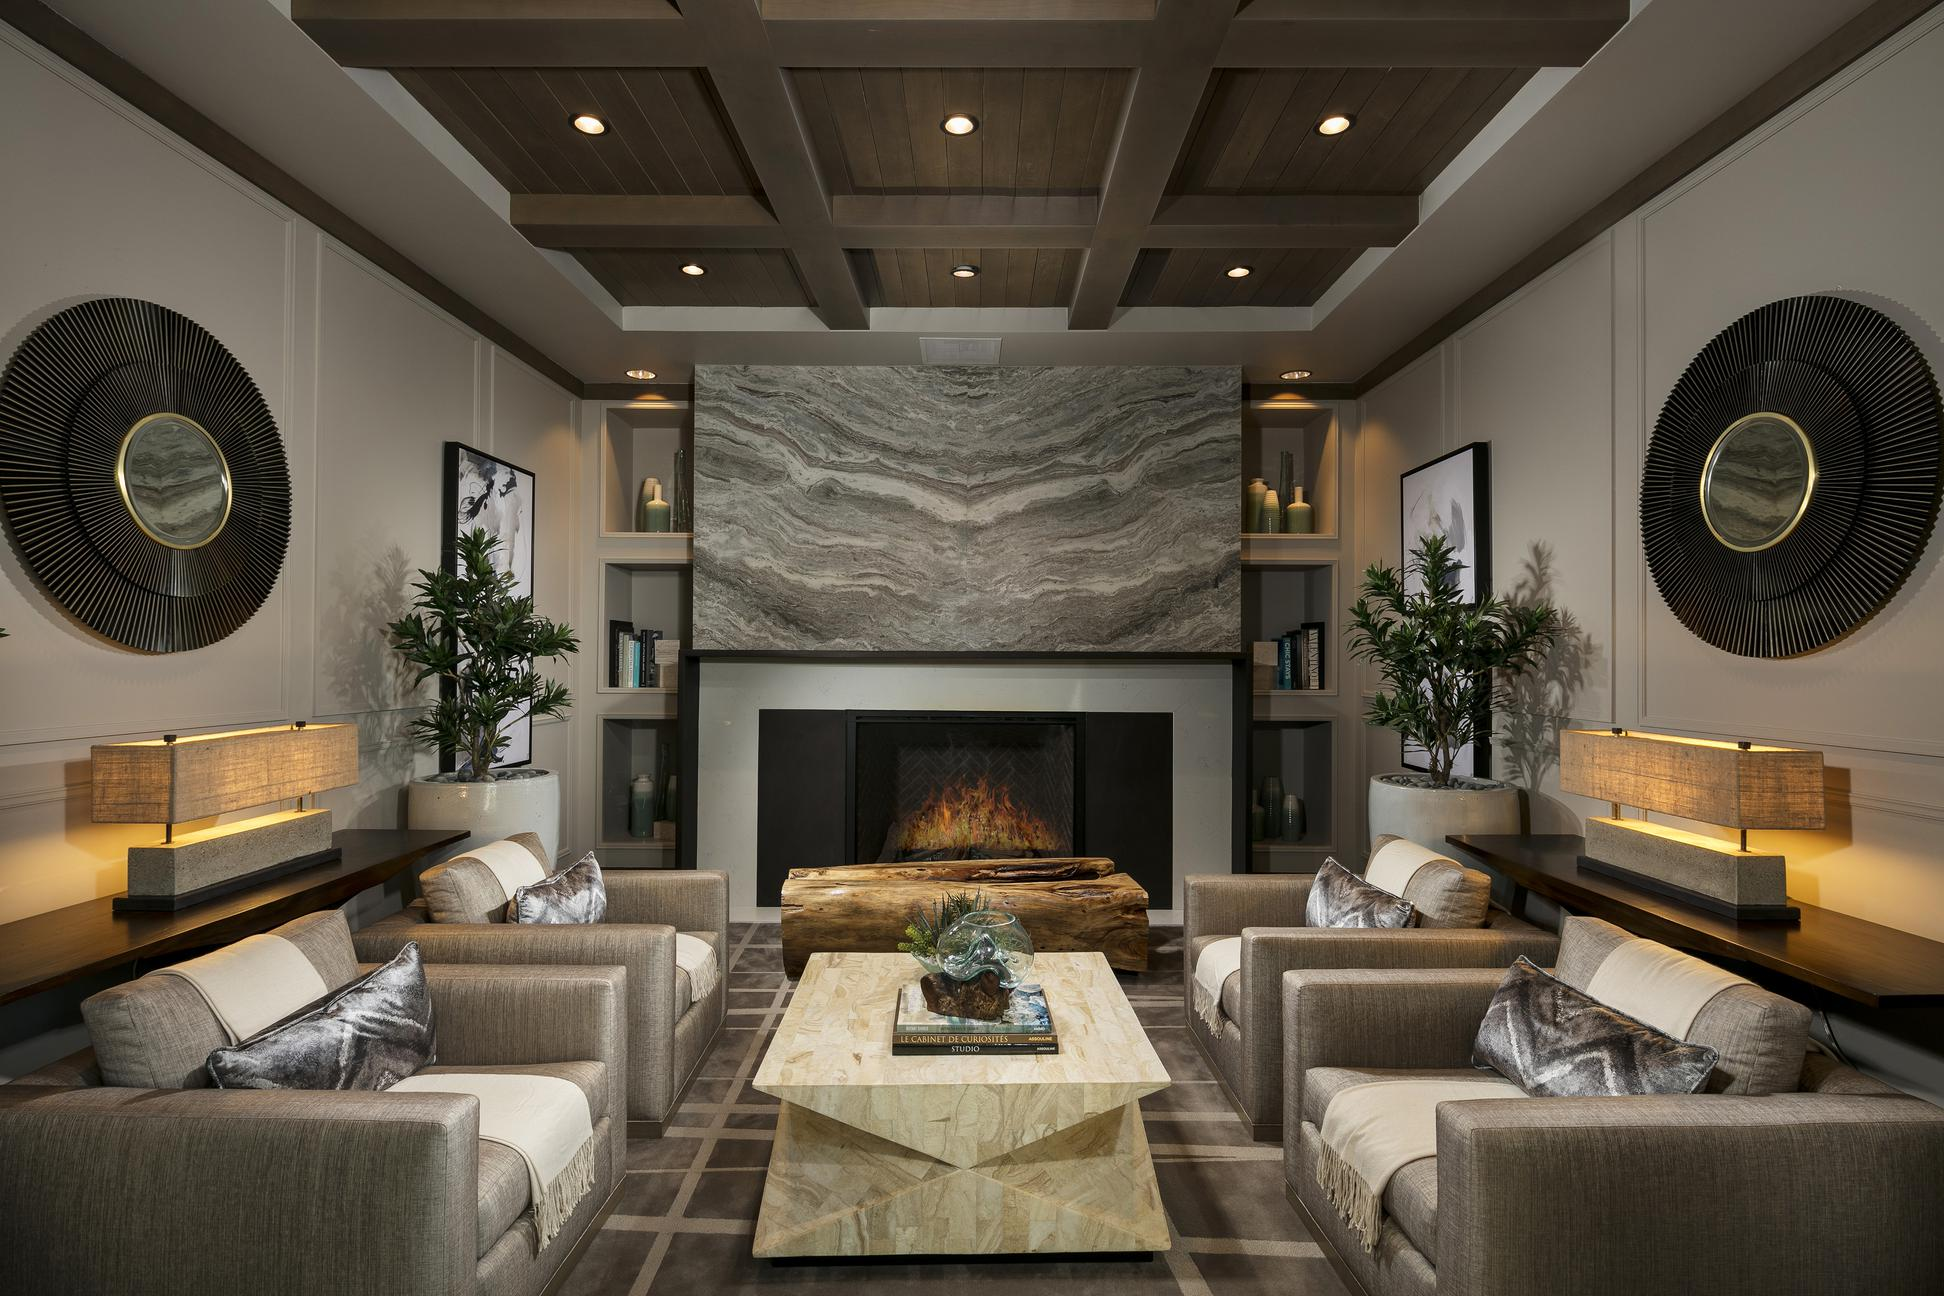 Living room with four large chairs in front of a fireplace.